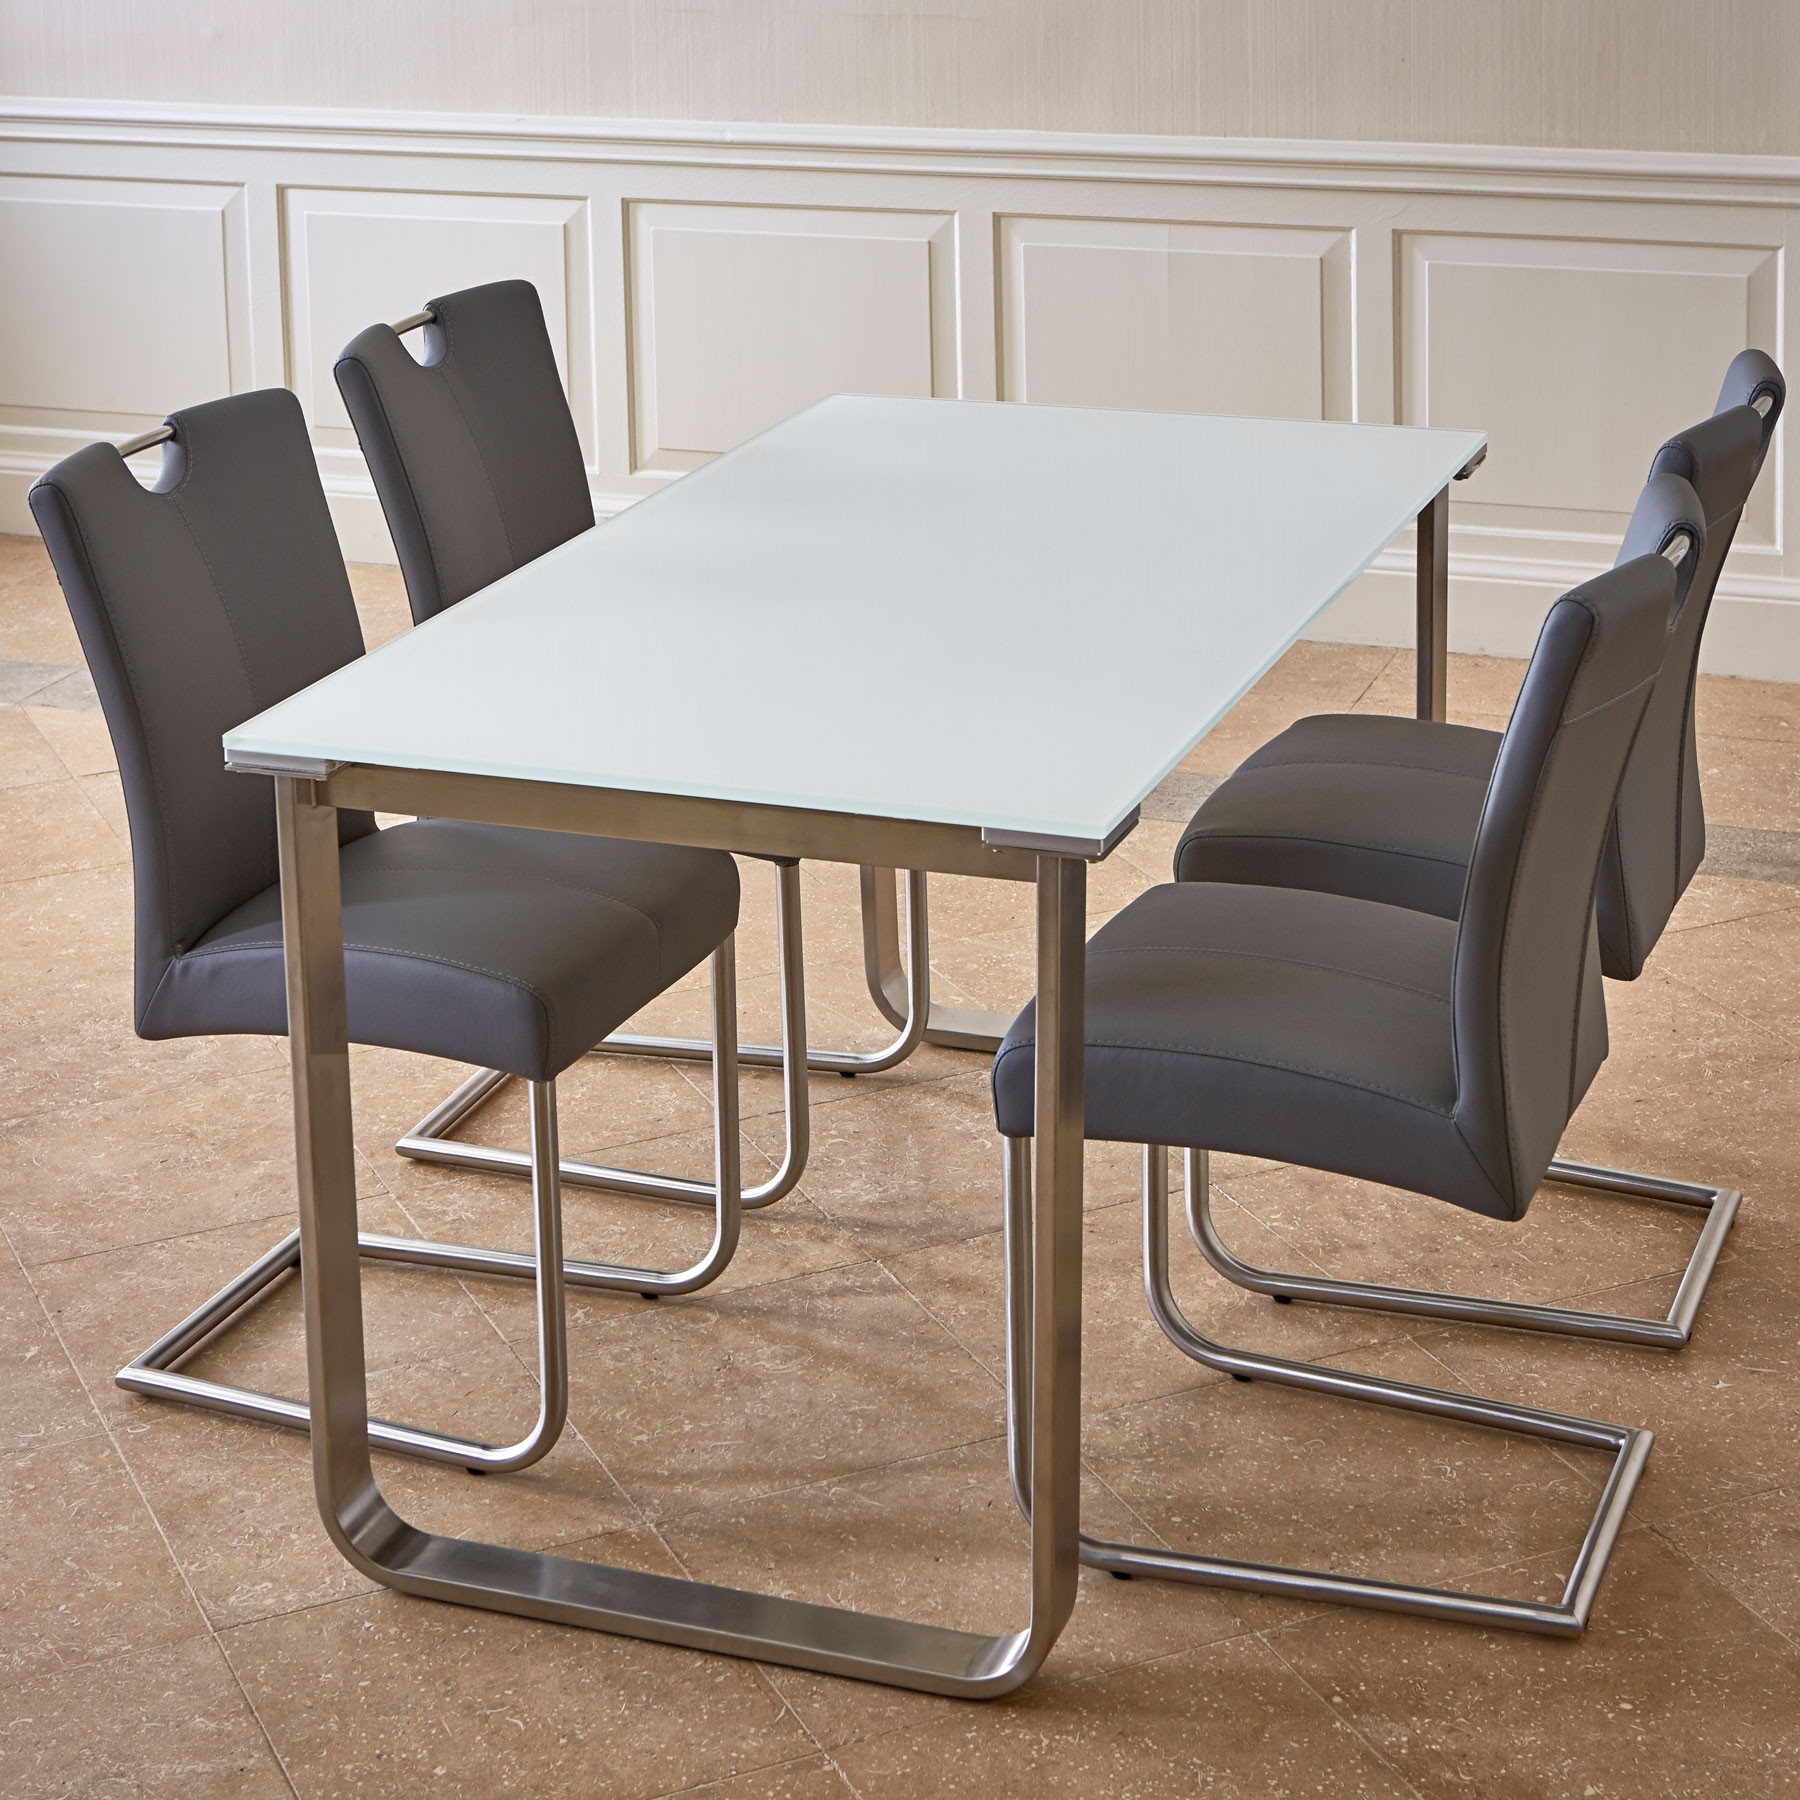 White Glass Dining Tables And Chairs With Preferred Pluto White Glass Dining Table & 4 Chairs (View 21 of 25)